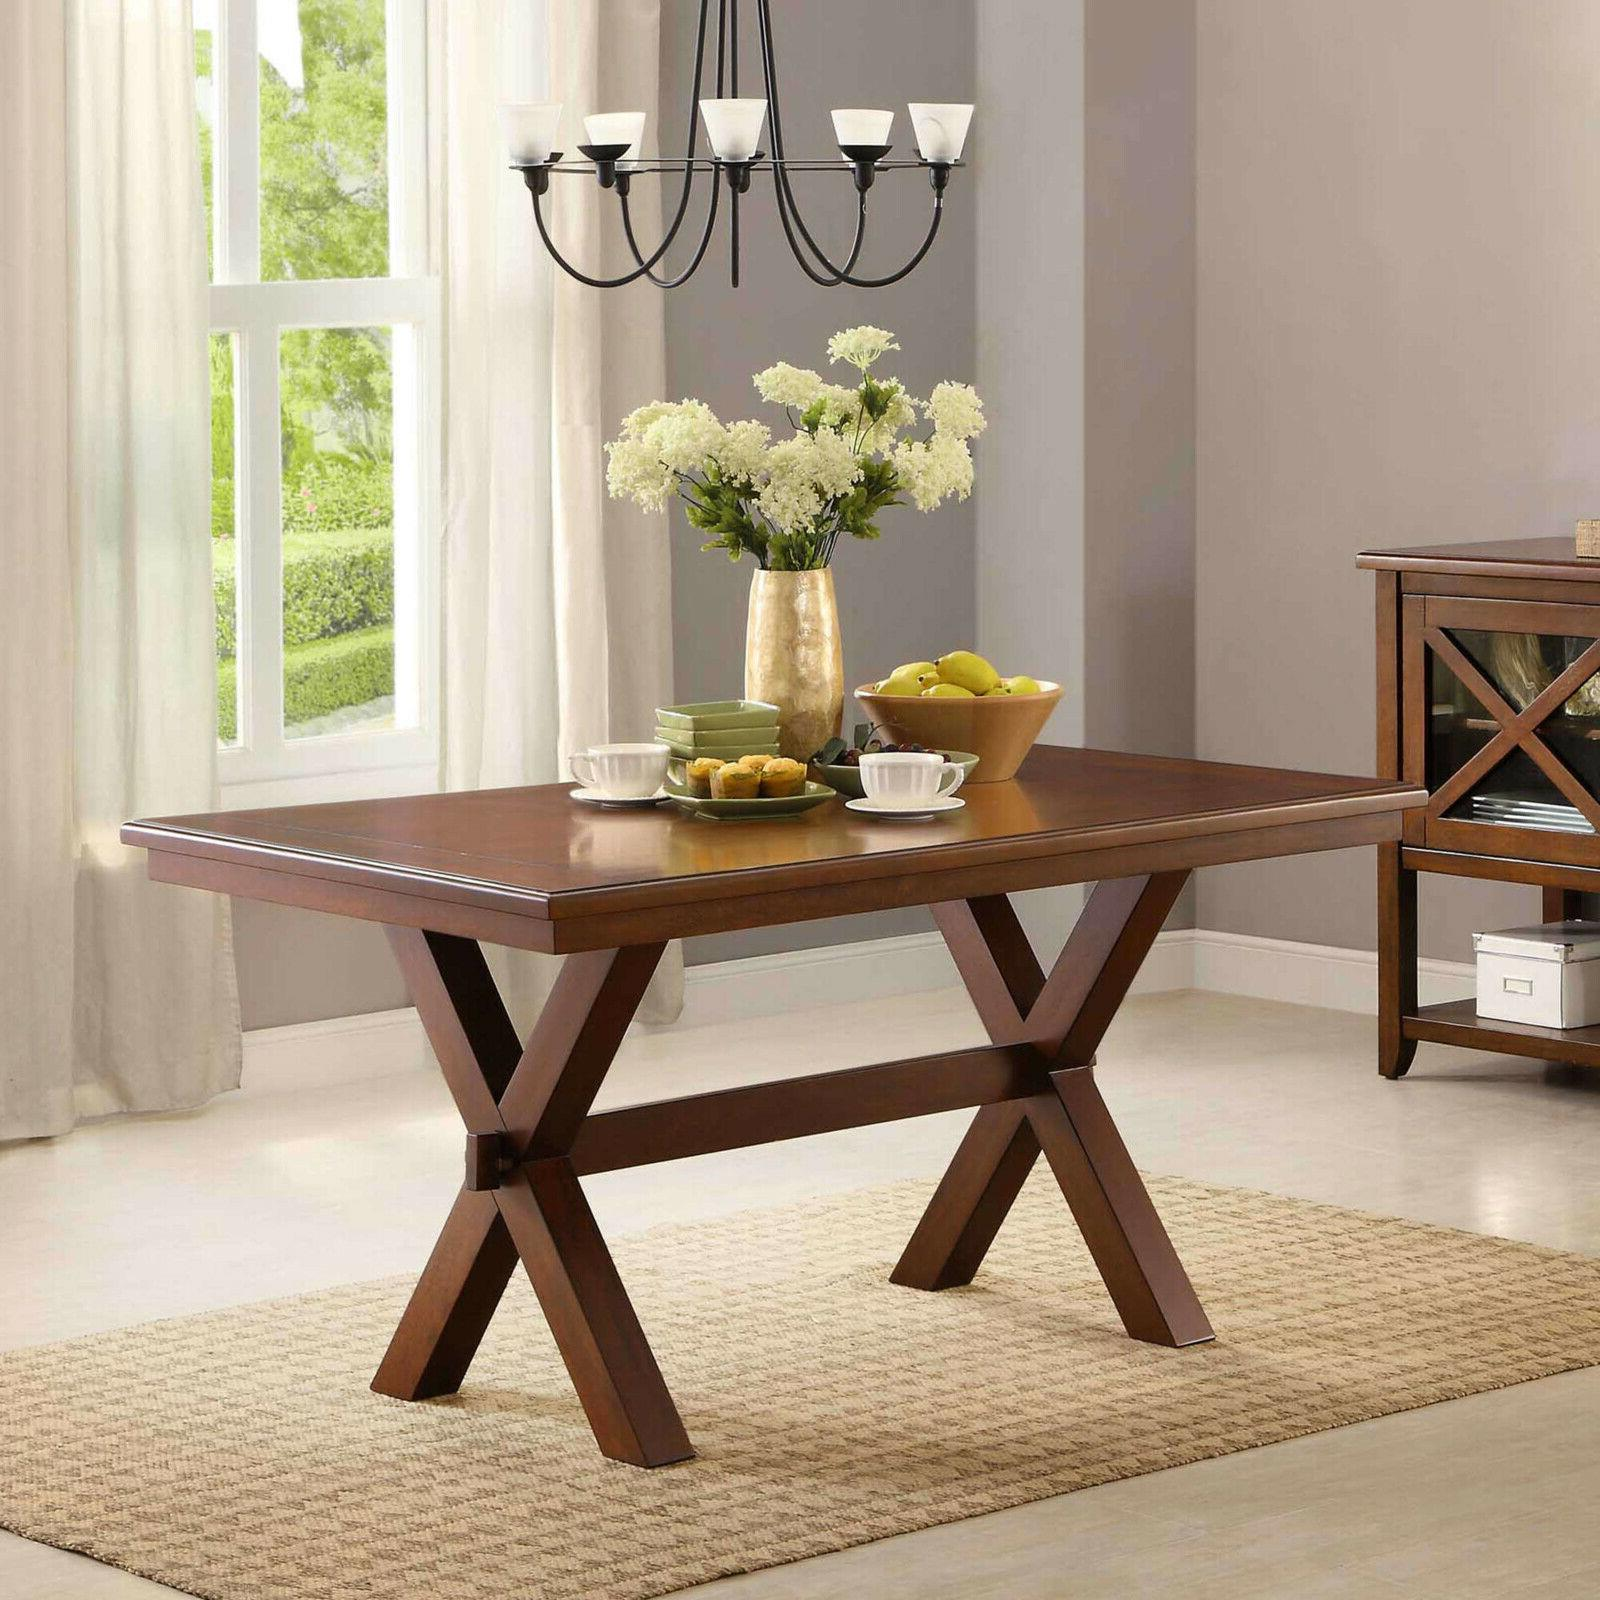 Dining Table Furniture Homes Rectangle Shape